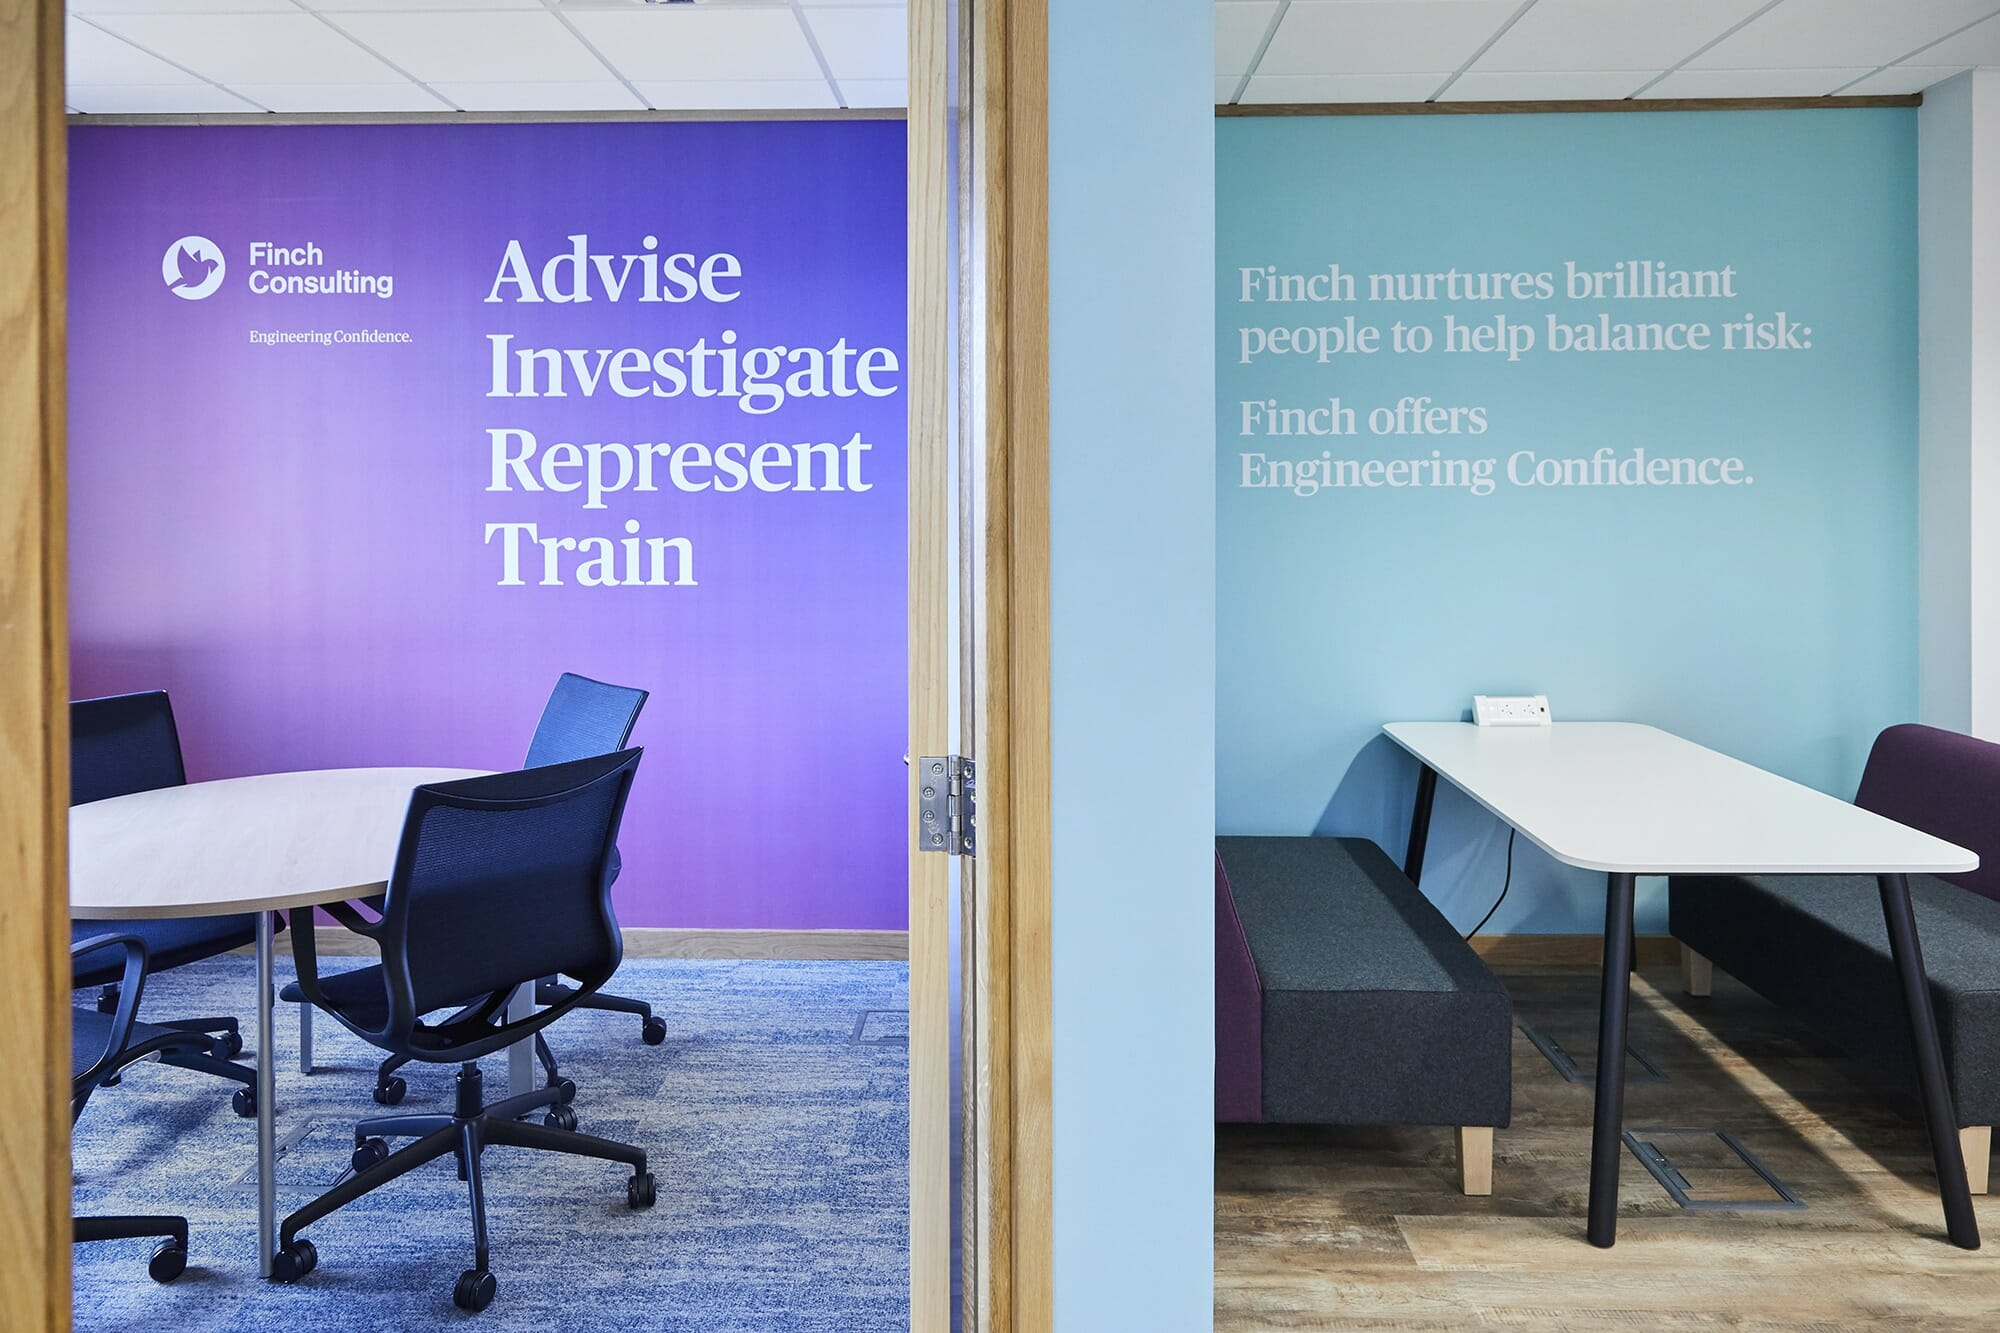 Finch Consulting commercial office design featuring company-branded wall graphics